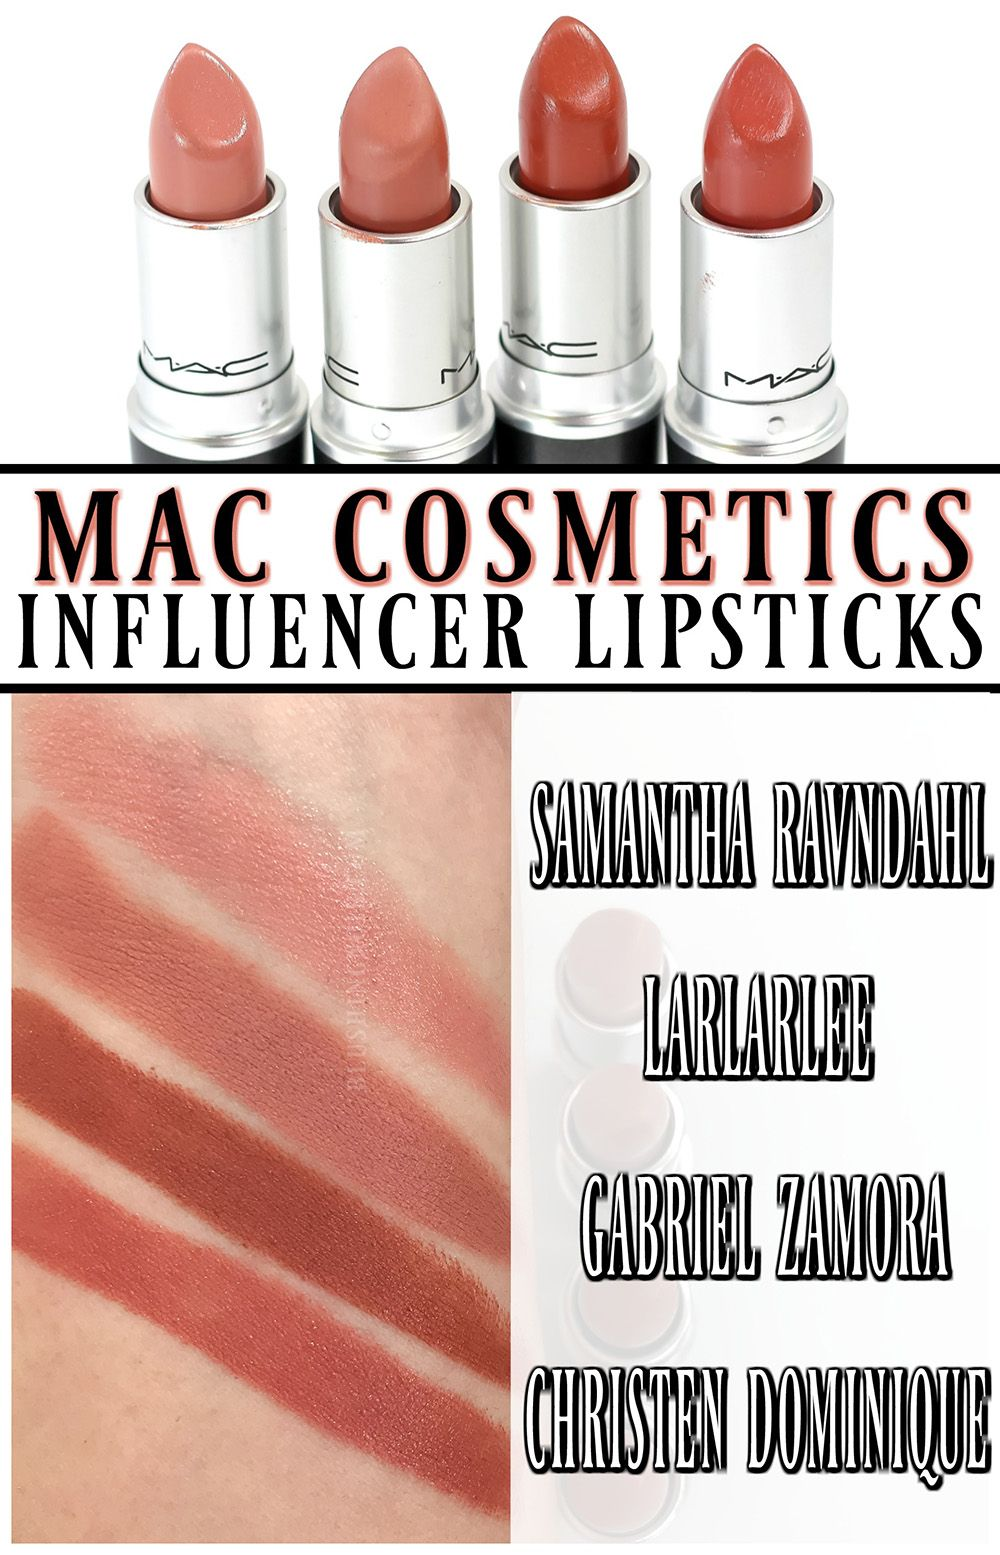 MAC x Christen Dominique Lipstick Review + Swatches